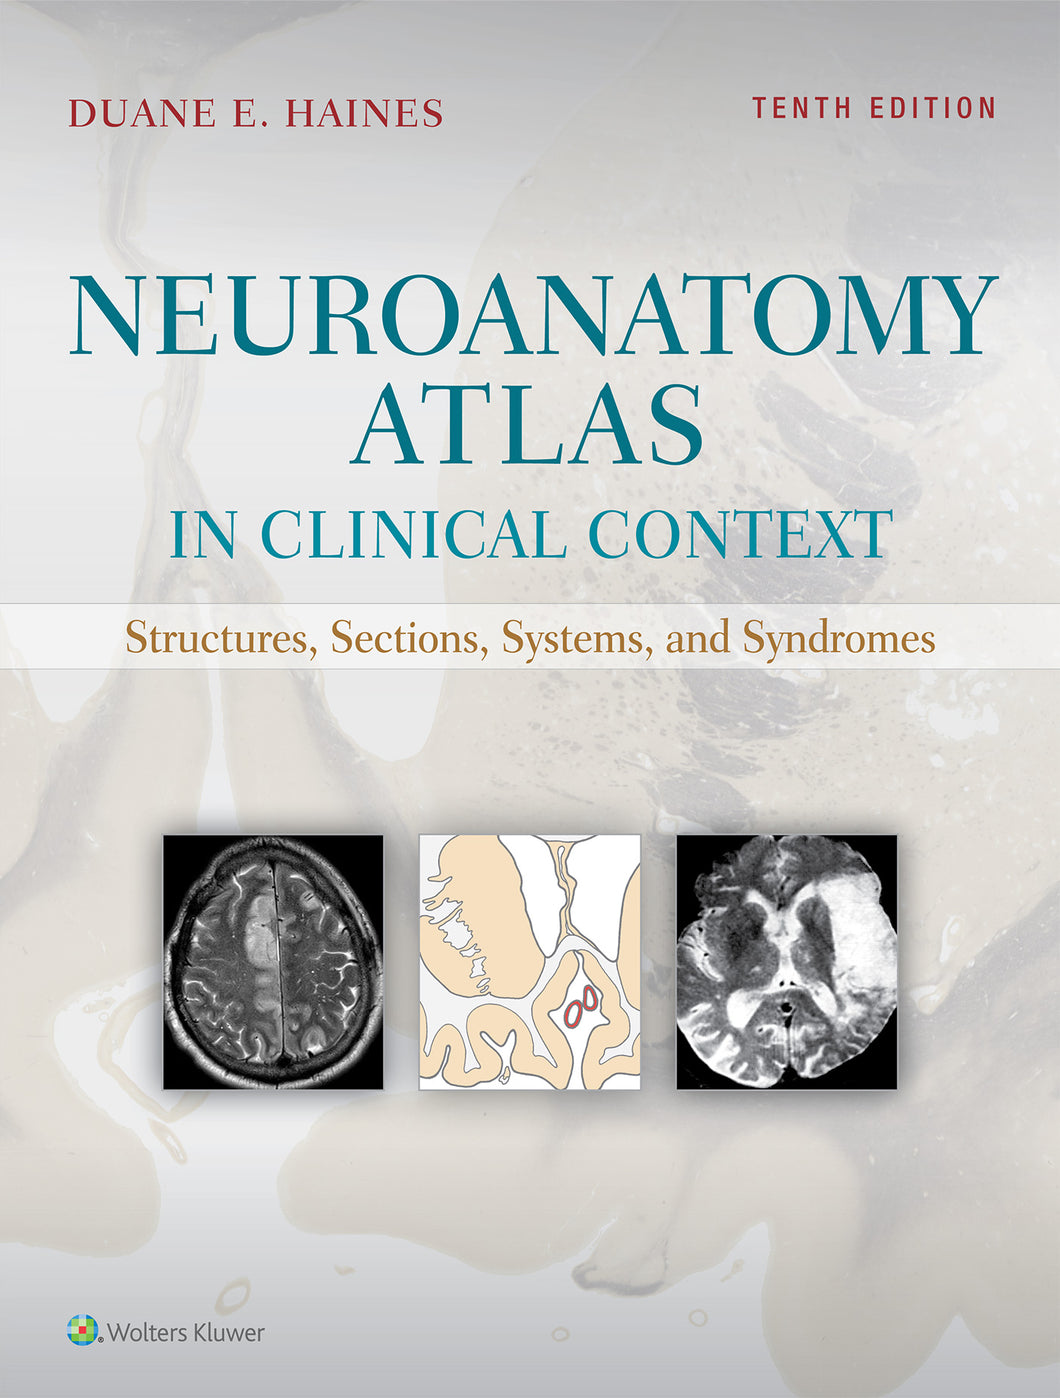 Neuroanatomy in Clinical Context: atlas of structures sections and systems 10th edition